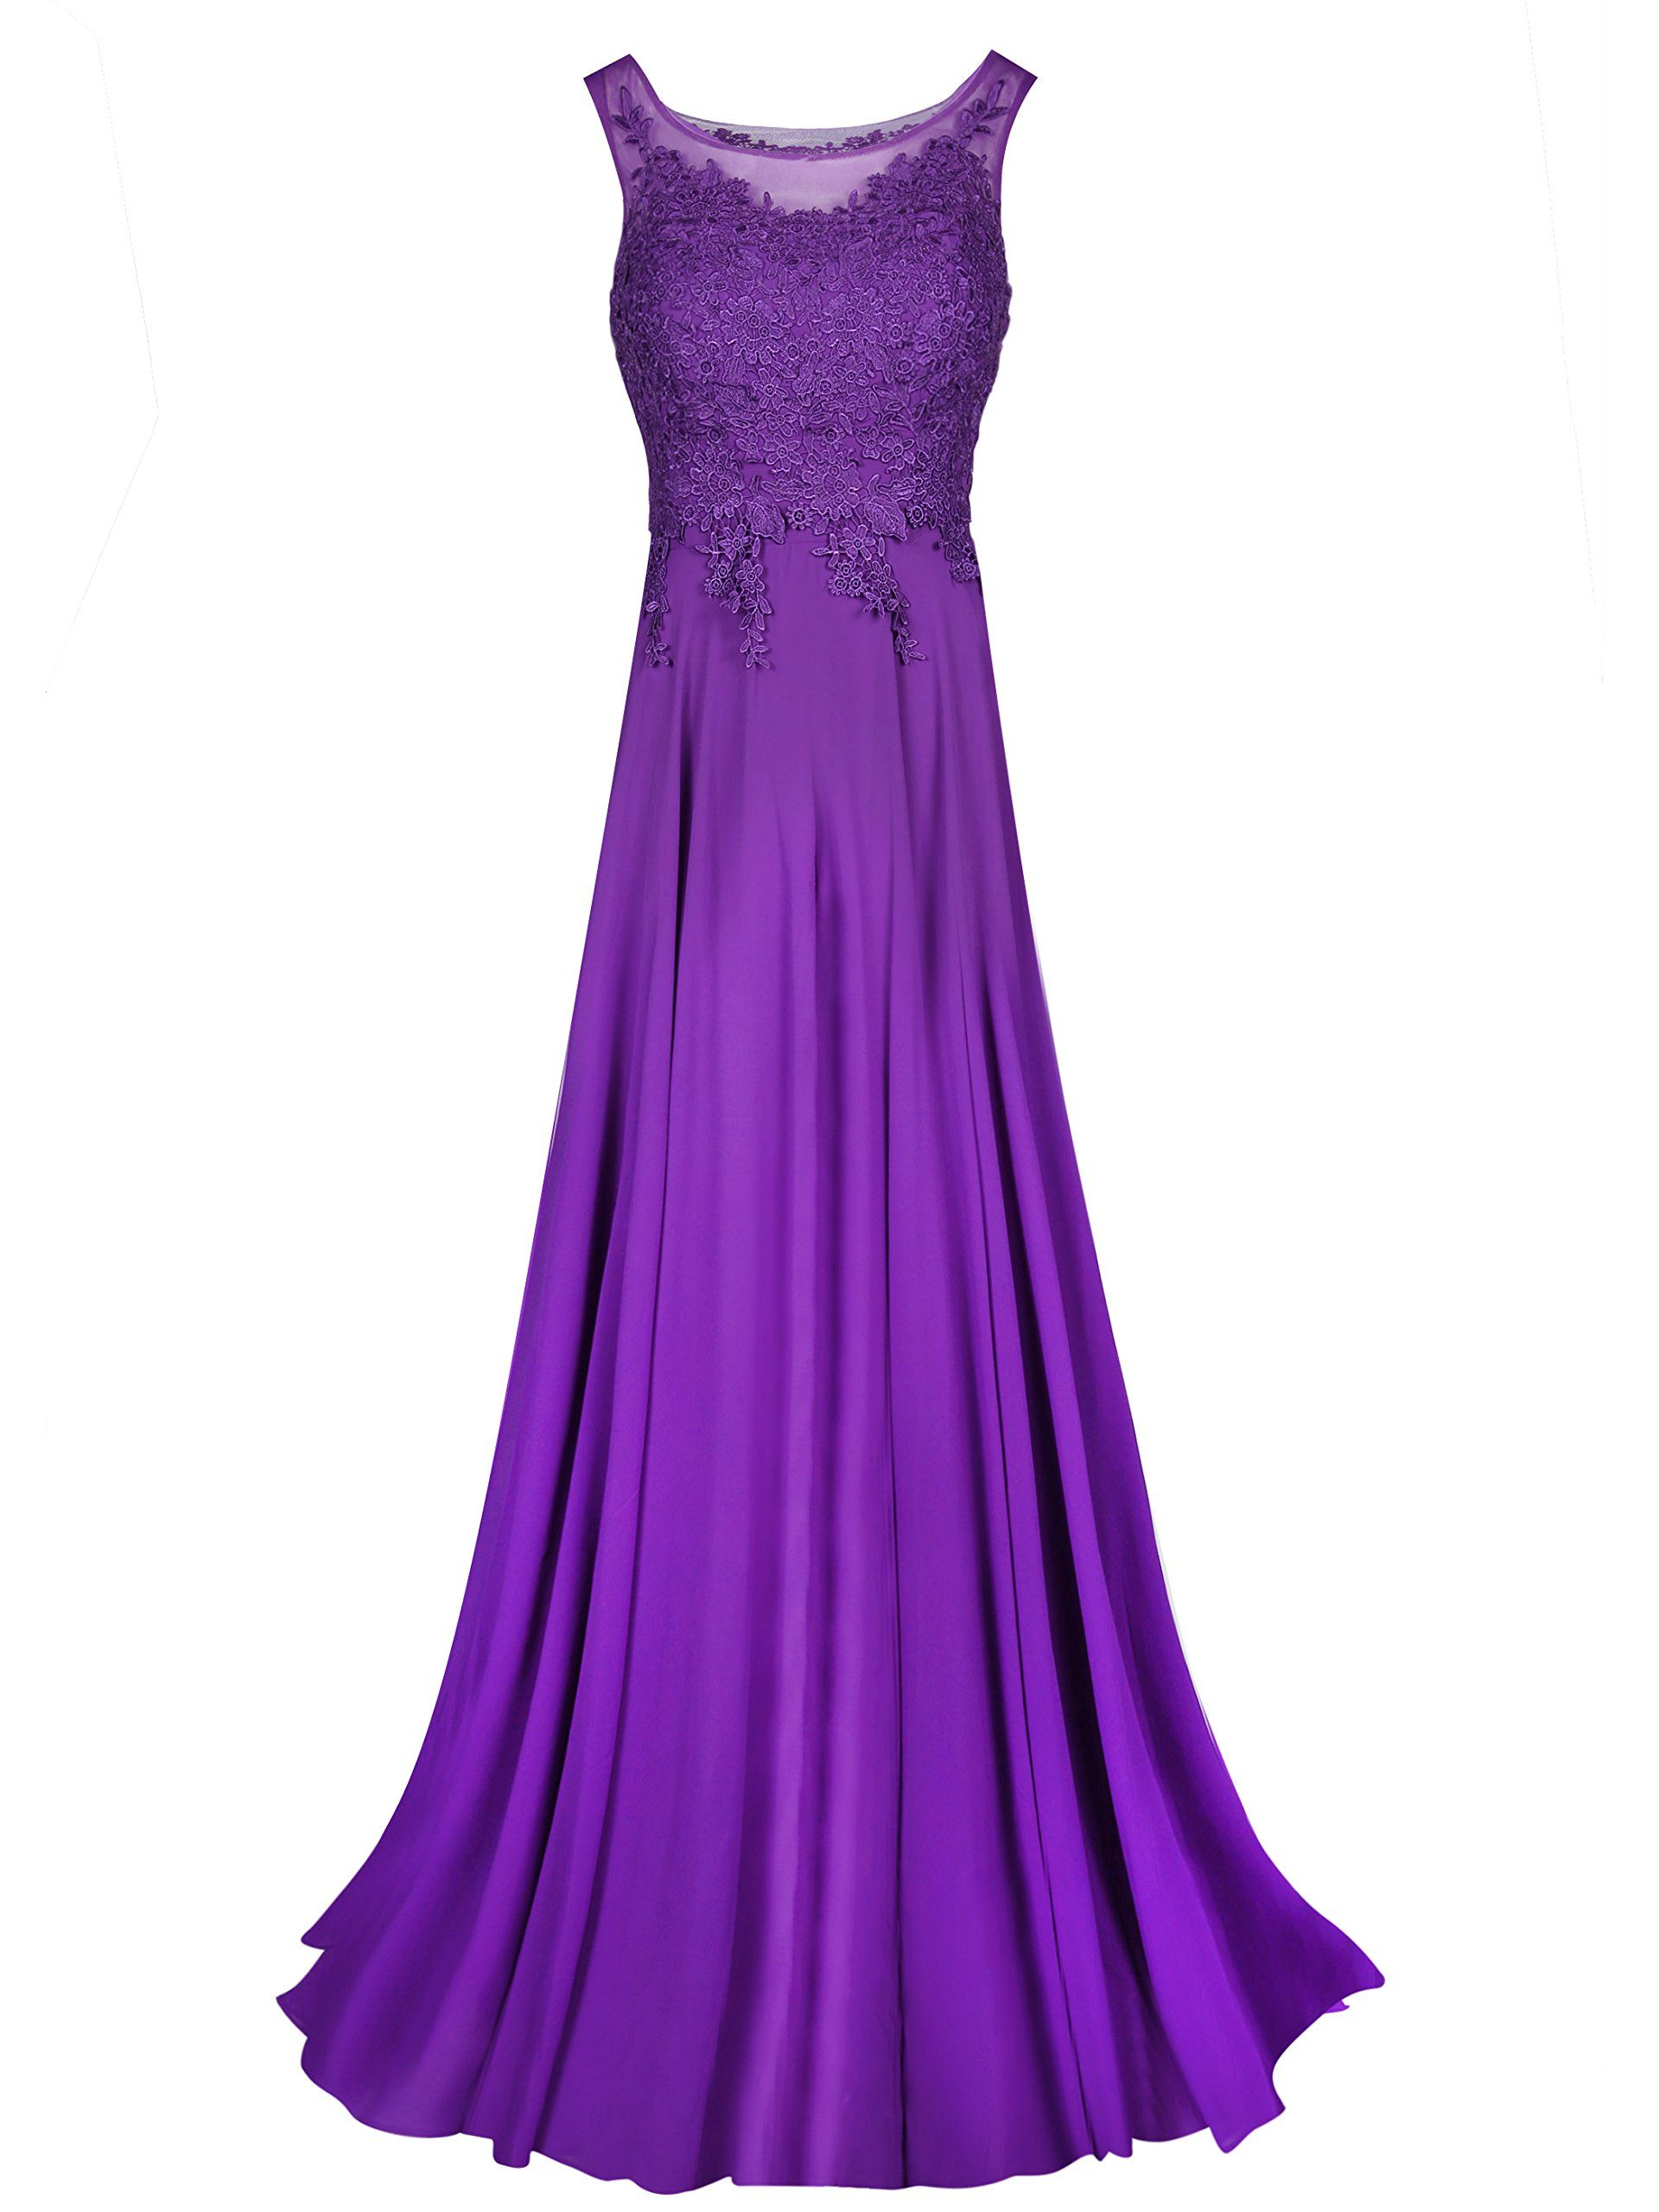 Tanpell Womens Straps Appliques Long Chiffon Formal Party Dress 8 Purple     Learn more by 5c021532c94e